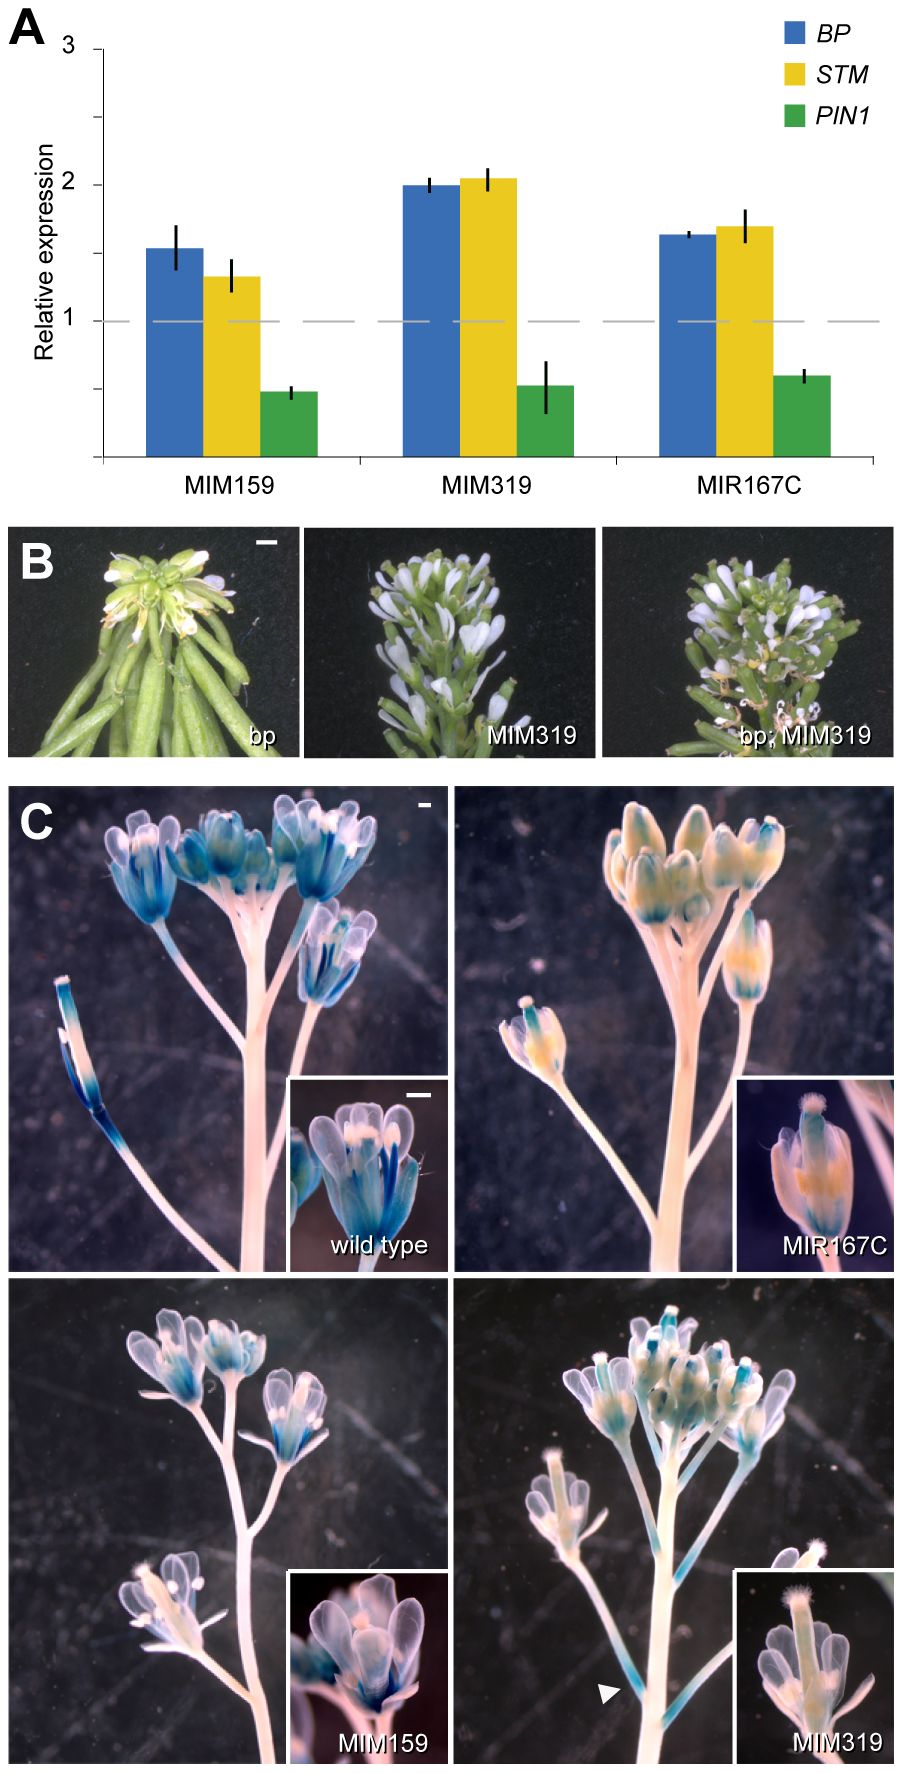 Effects of miRNA mis-regulation on hormone pathways important for flower formation and maturation.